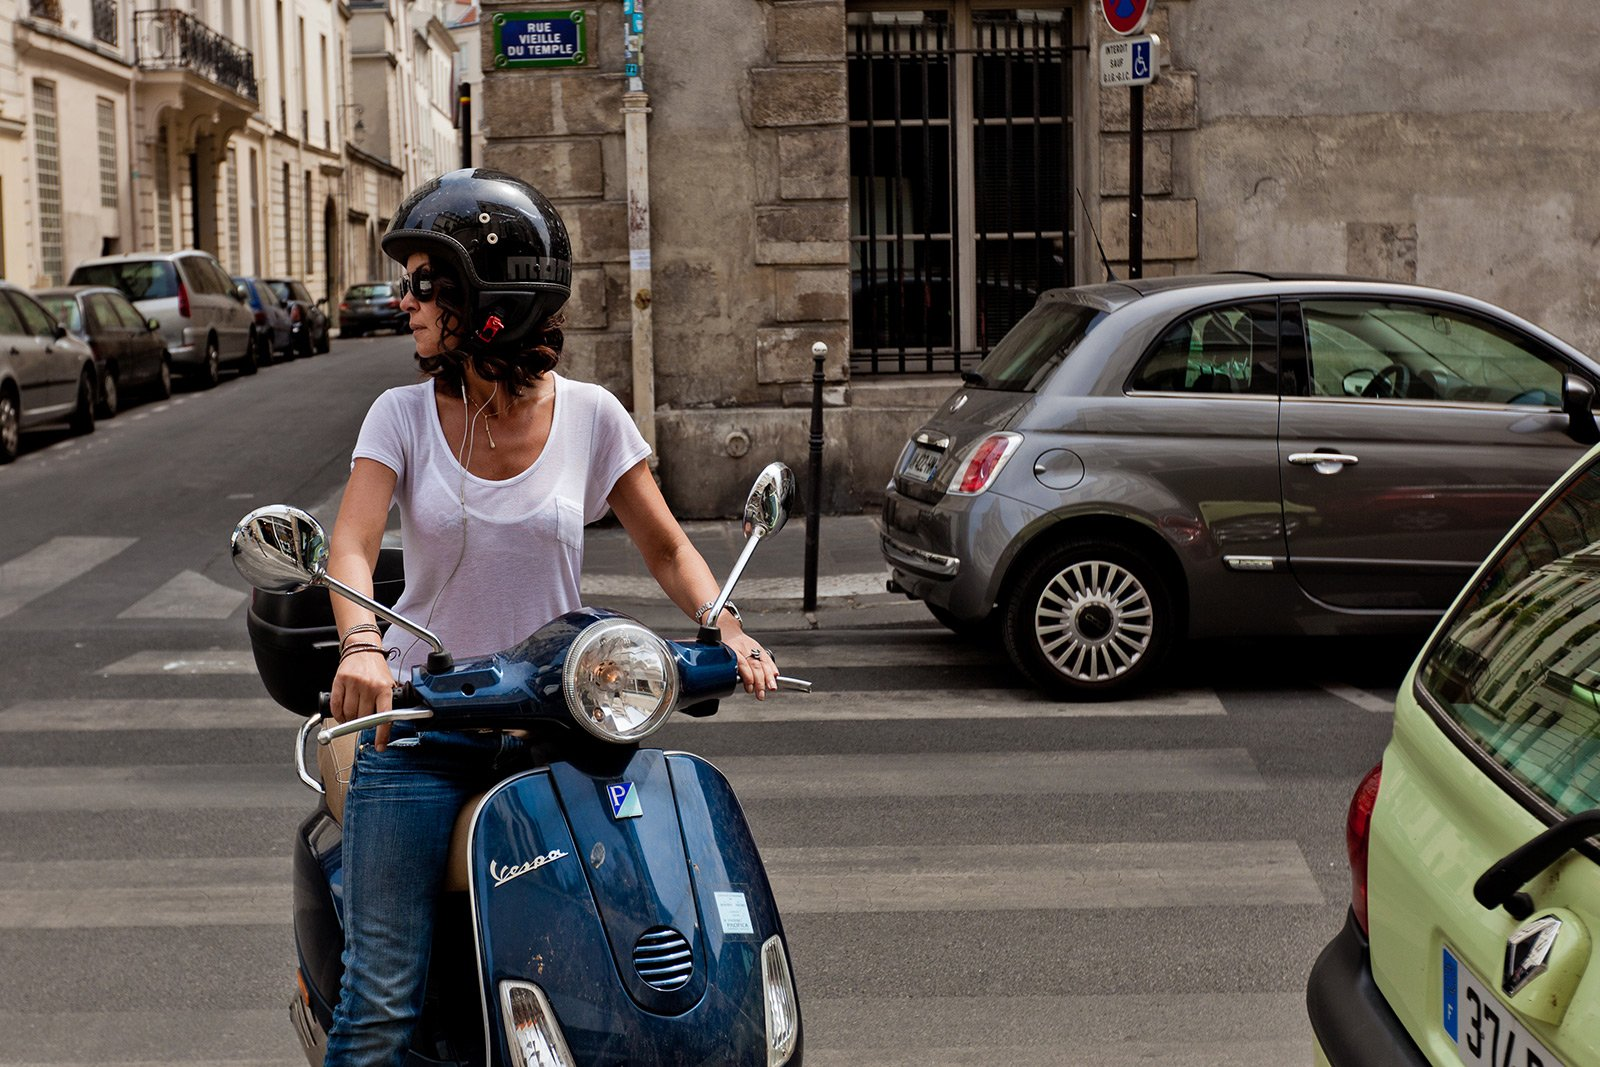 How to ride on retro scooter in Paris